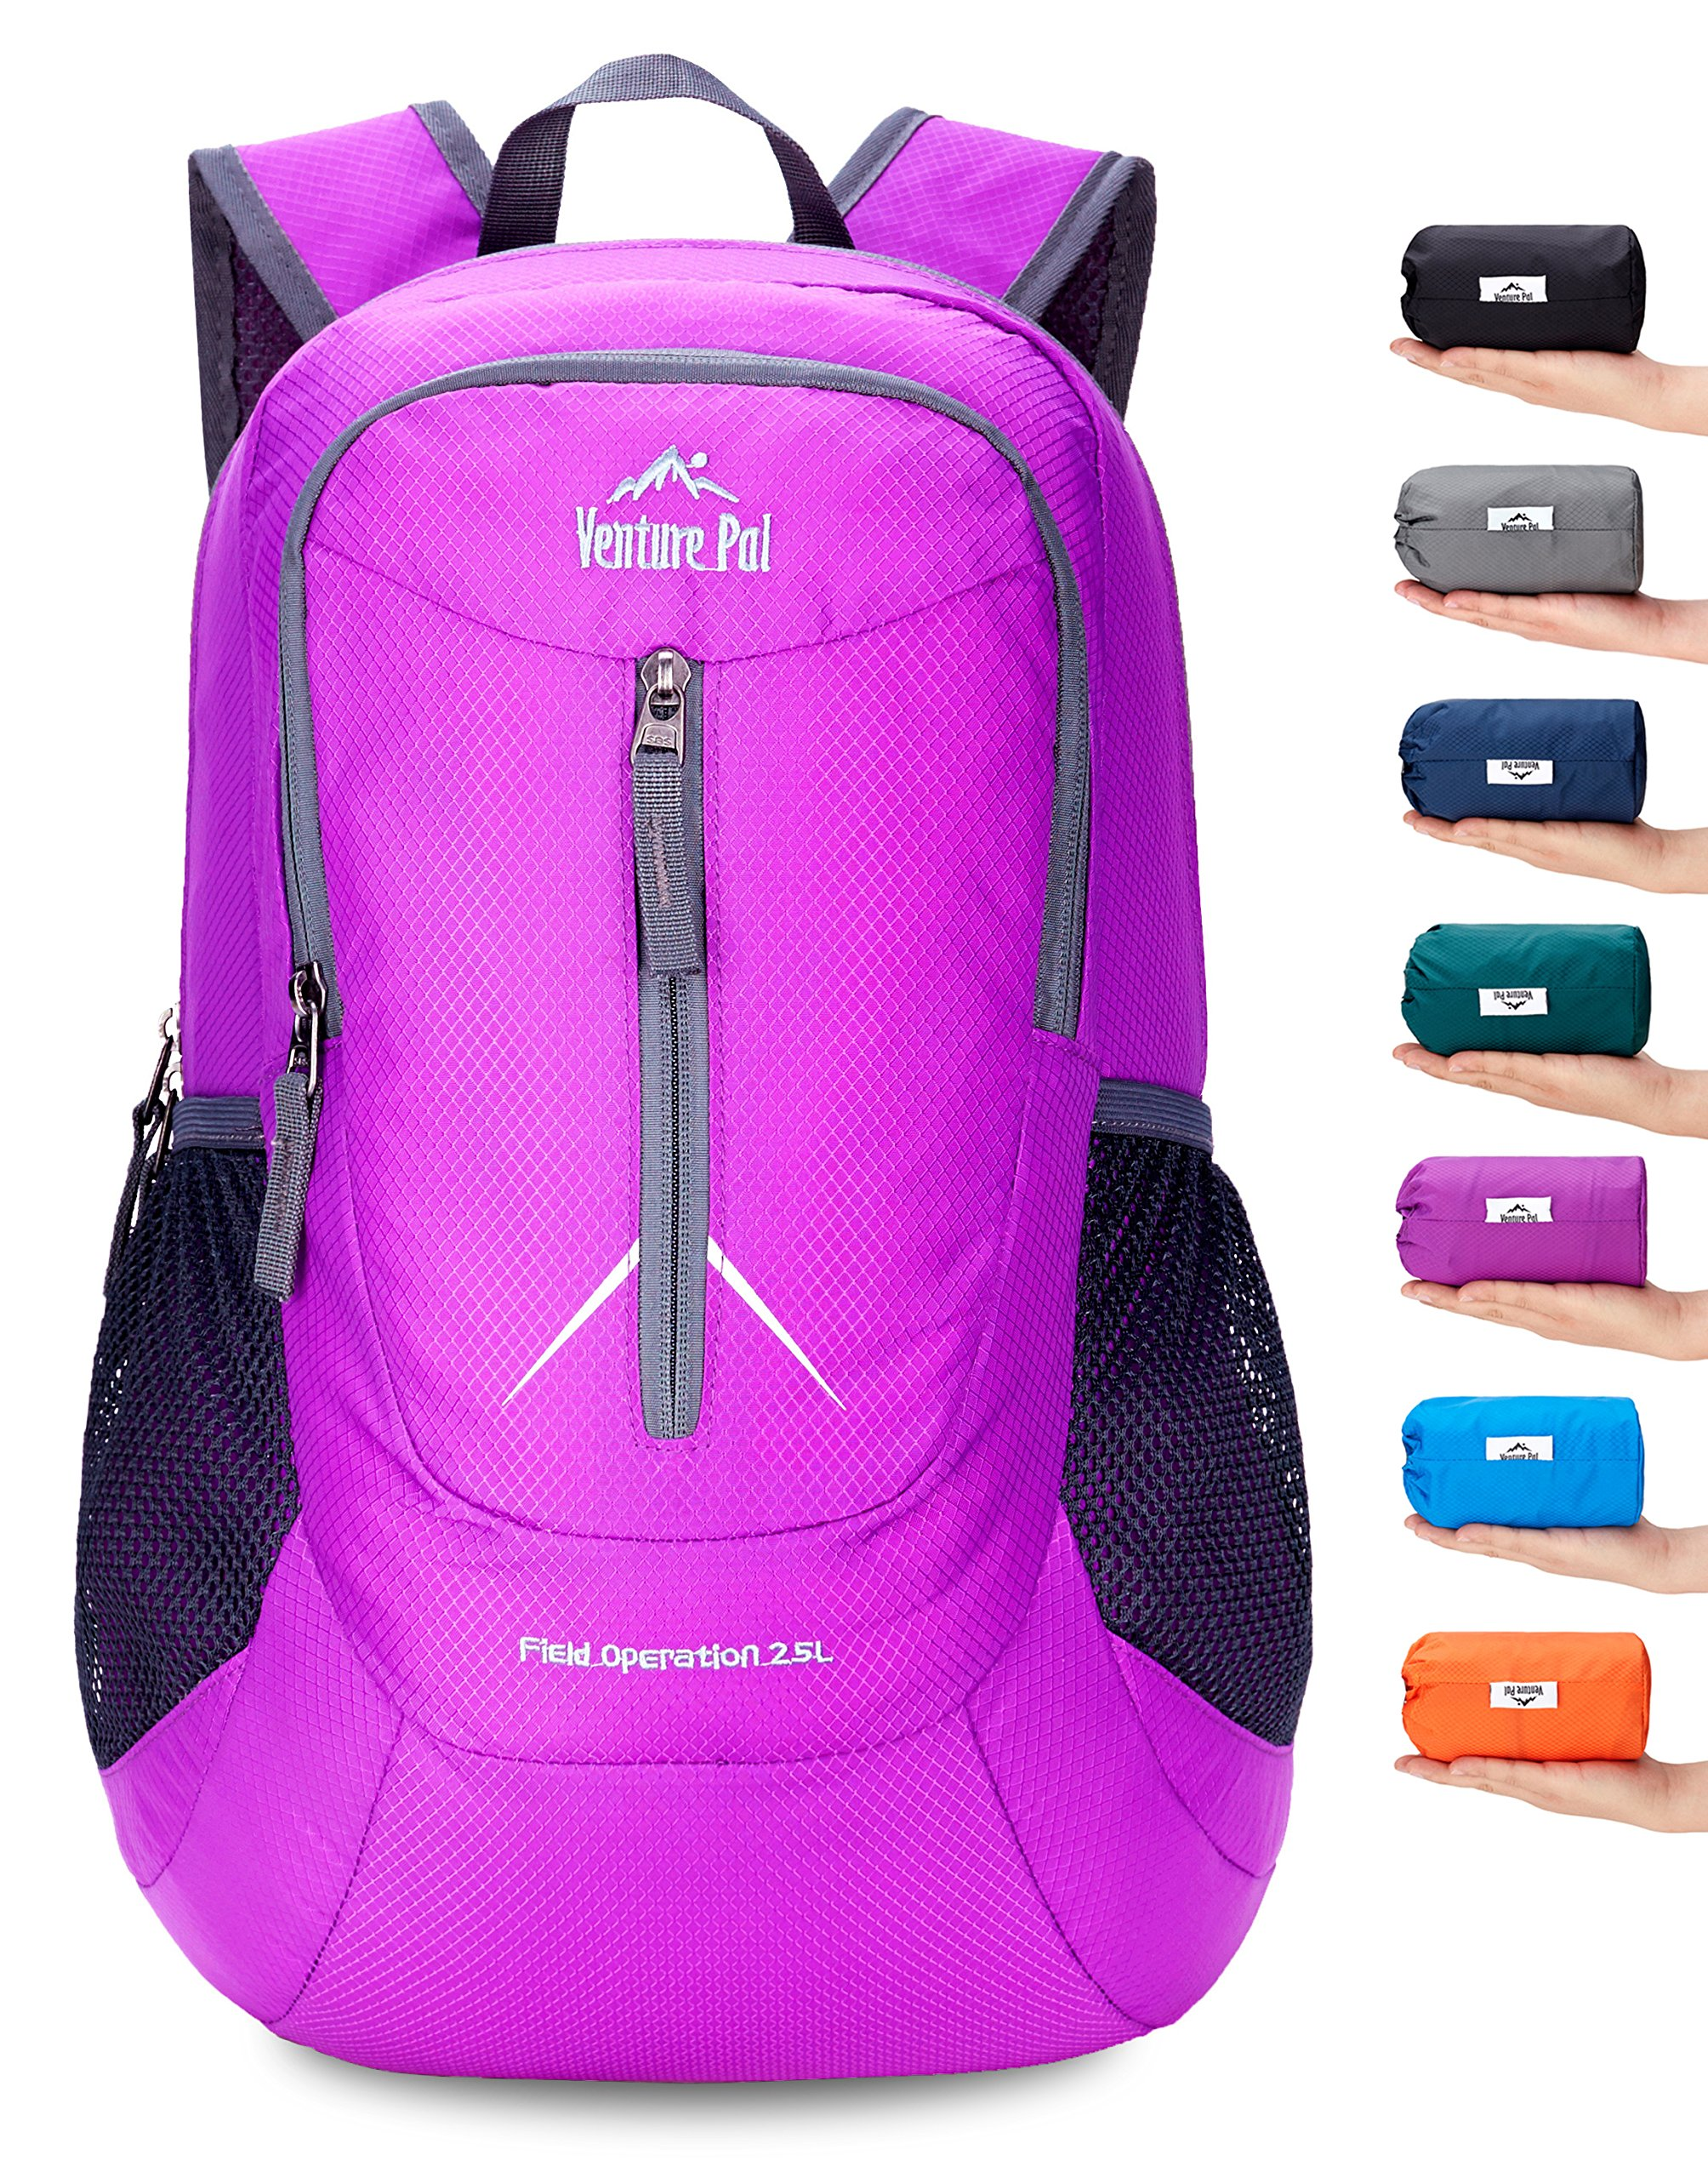 Venture Pal 25L - Durable Packable Lightweight Travel Hiking Backpack Daypack Small Bag for Men Women (Purple) by Venture Pal